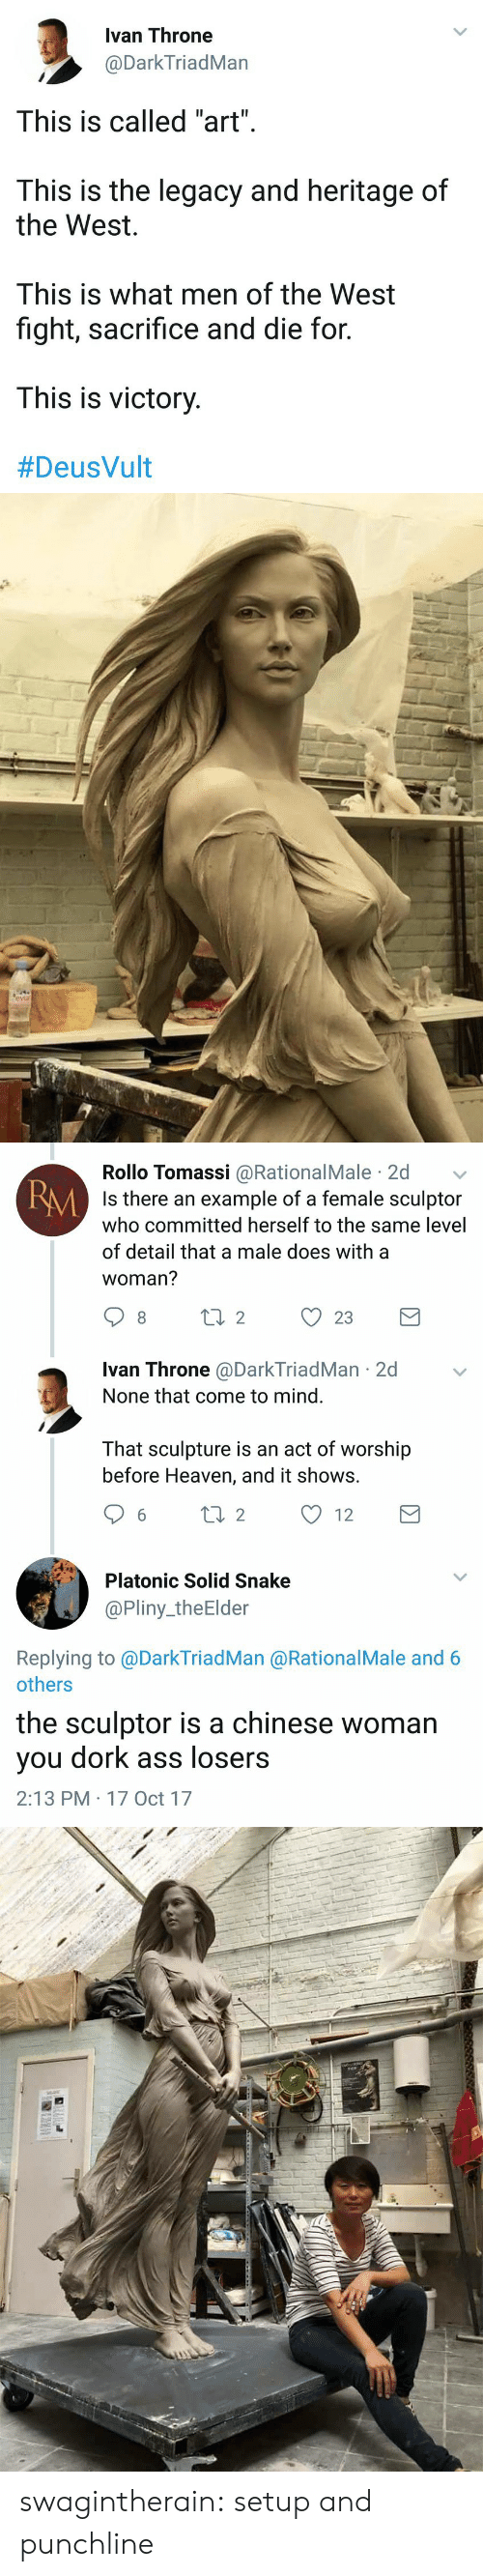 """Deusvult: Ivan Throne  @DarkTriadMan  This is called """"art"""".  This is the legacy and heritage of  the West  This is what men of the West  fight, sacrifice and die for  This is victory  #DeusVult   Rollo Tomassi @RationalMale 2d  Is there an example of a female sculptor  who committed herself to the same level  of detail that a male does with a  woman?  RM  Ivan Throne @DarkTriadMan 2d  None that come to mind.  That sculpture is an act of worship  before Heaven, and it shows.  6 ti 2 12  Platonic Solid Snake  @Pliny_theElder  Replying to @DarkTriadMan @RationalMale and 6  others  the sculptor is a chinese woman  you dork ass losers  2:13 PM 17 Oct 17 swagintherain:   setup and  punchline"""